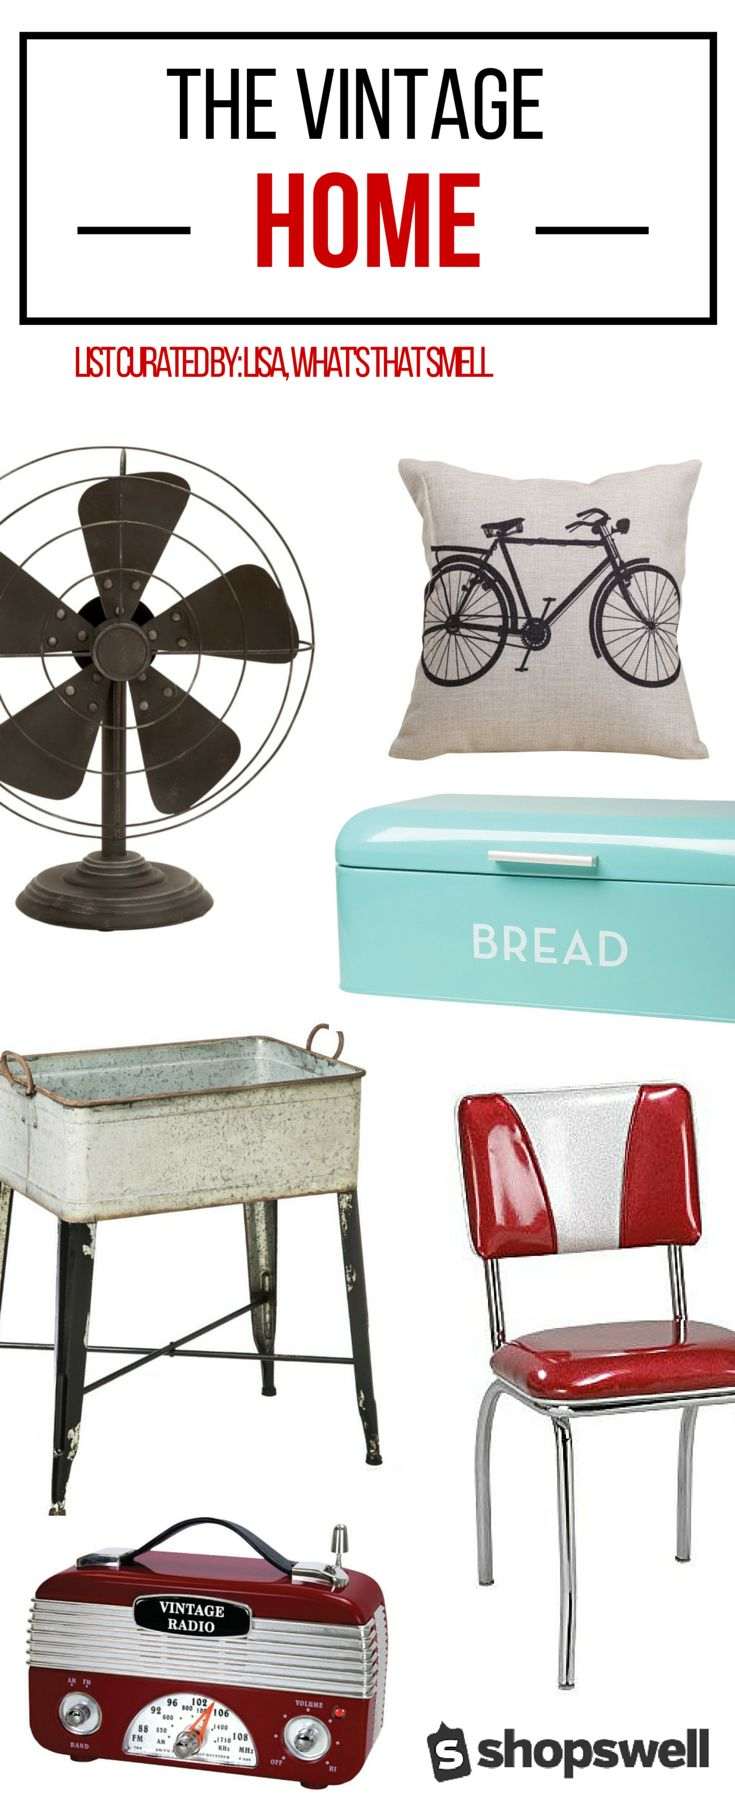 Vintage furnishings and decor items that will help you create a sophisticate retro design feel in your home. Whether you want to go all out and fill and entire room with retro furnishings and decor, or simply accent your current design style with some vintage pieces, it's easy and fun to add some unique flair to your home.